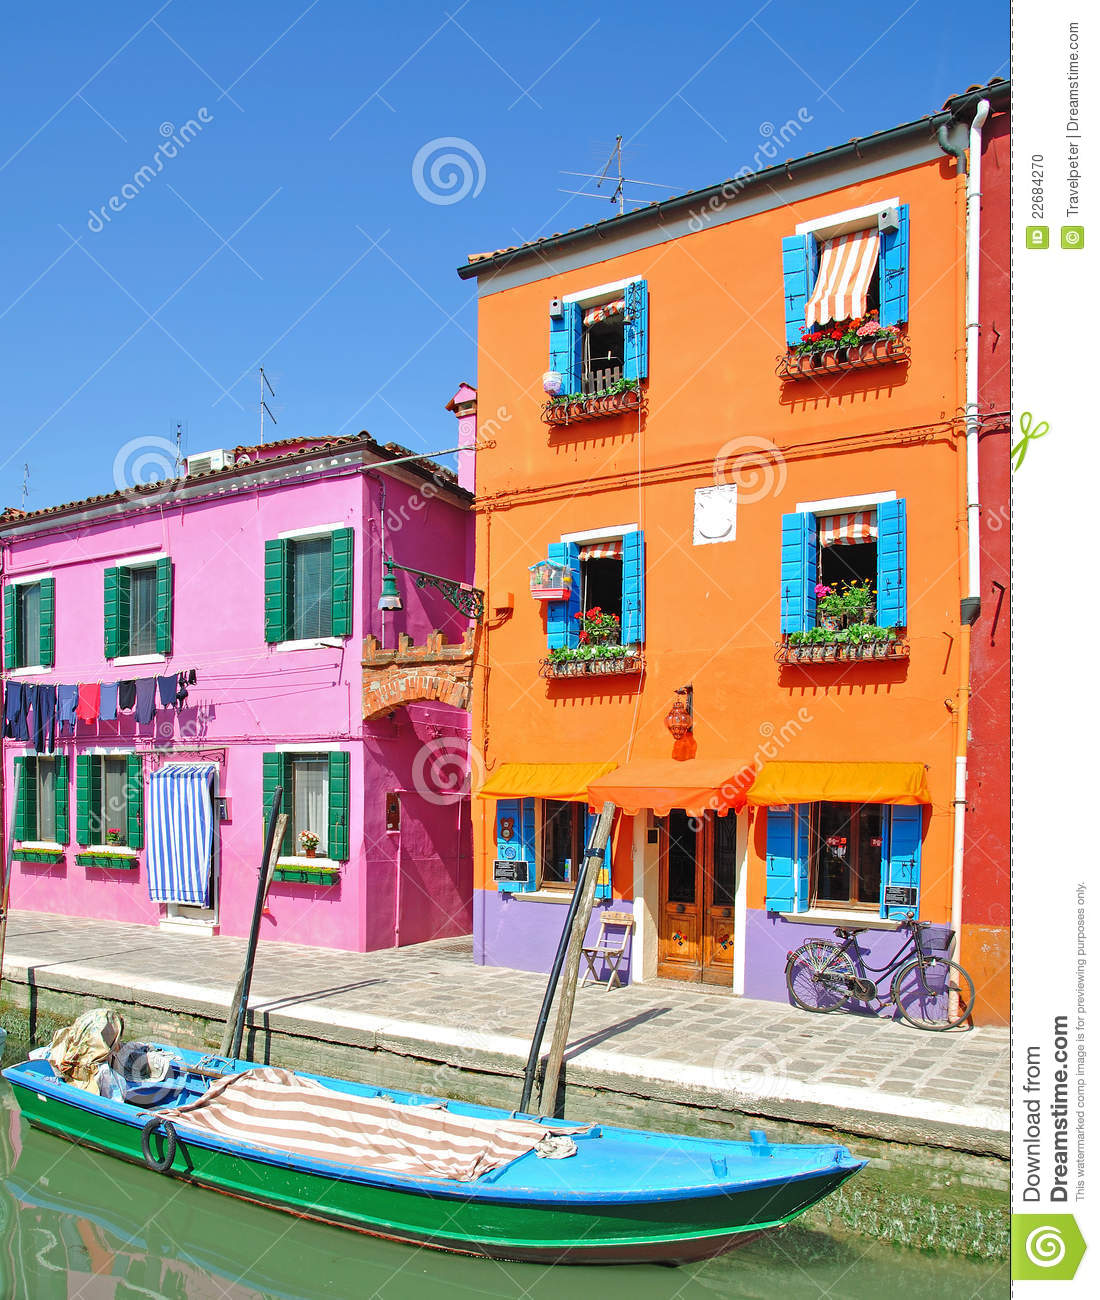 Download Burano Island,Lagoon Of Venice Stock Photo - Image of picturesque, interest: 22684270